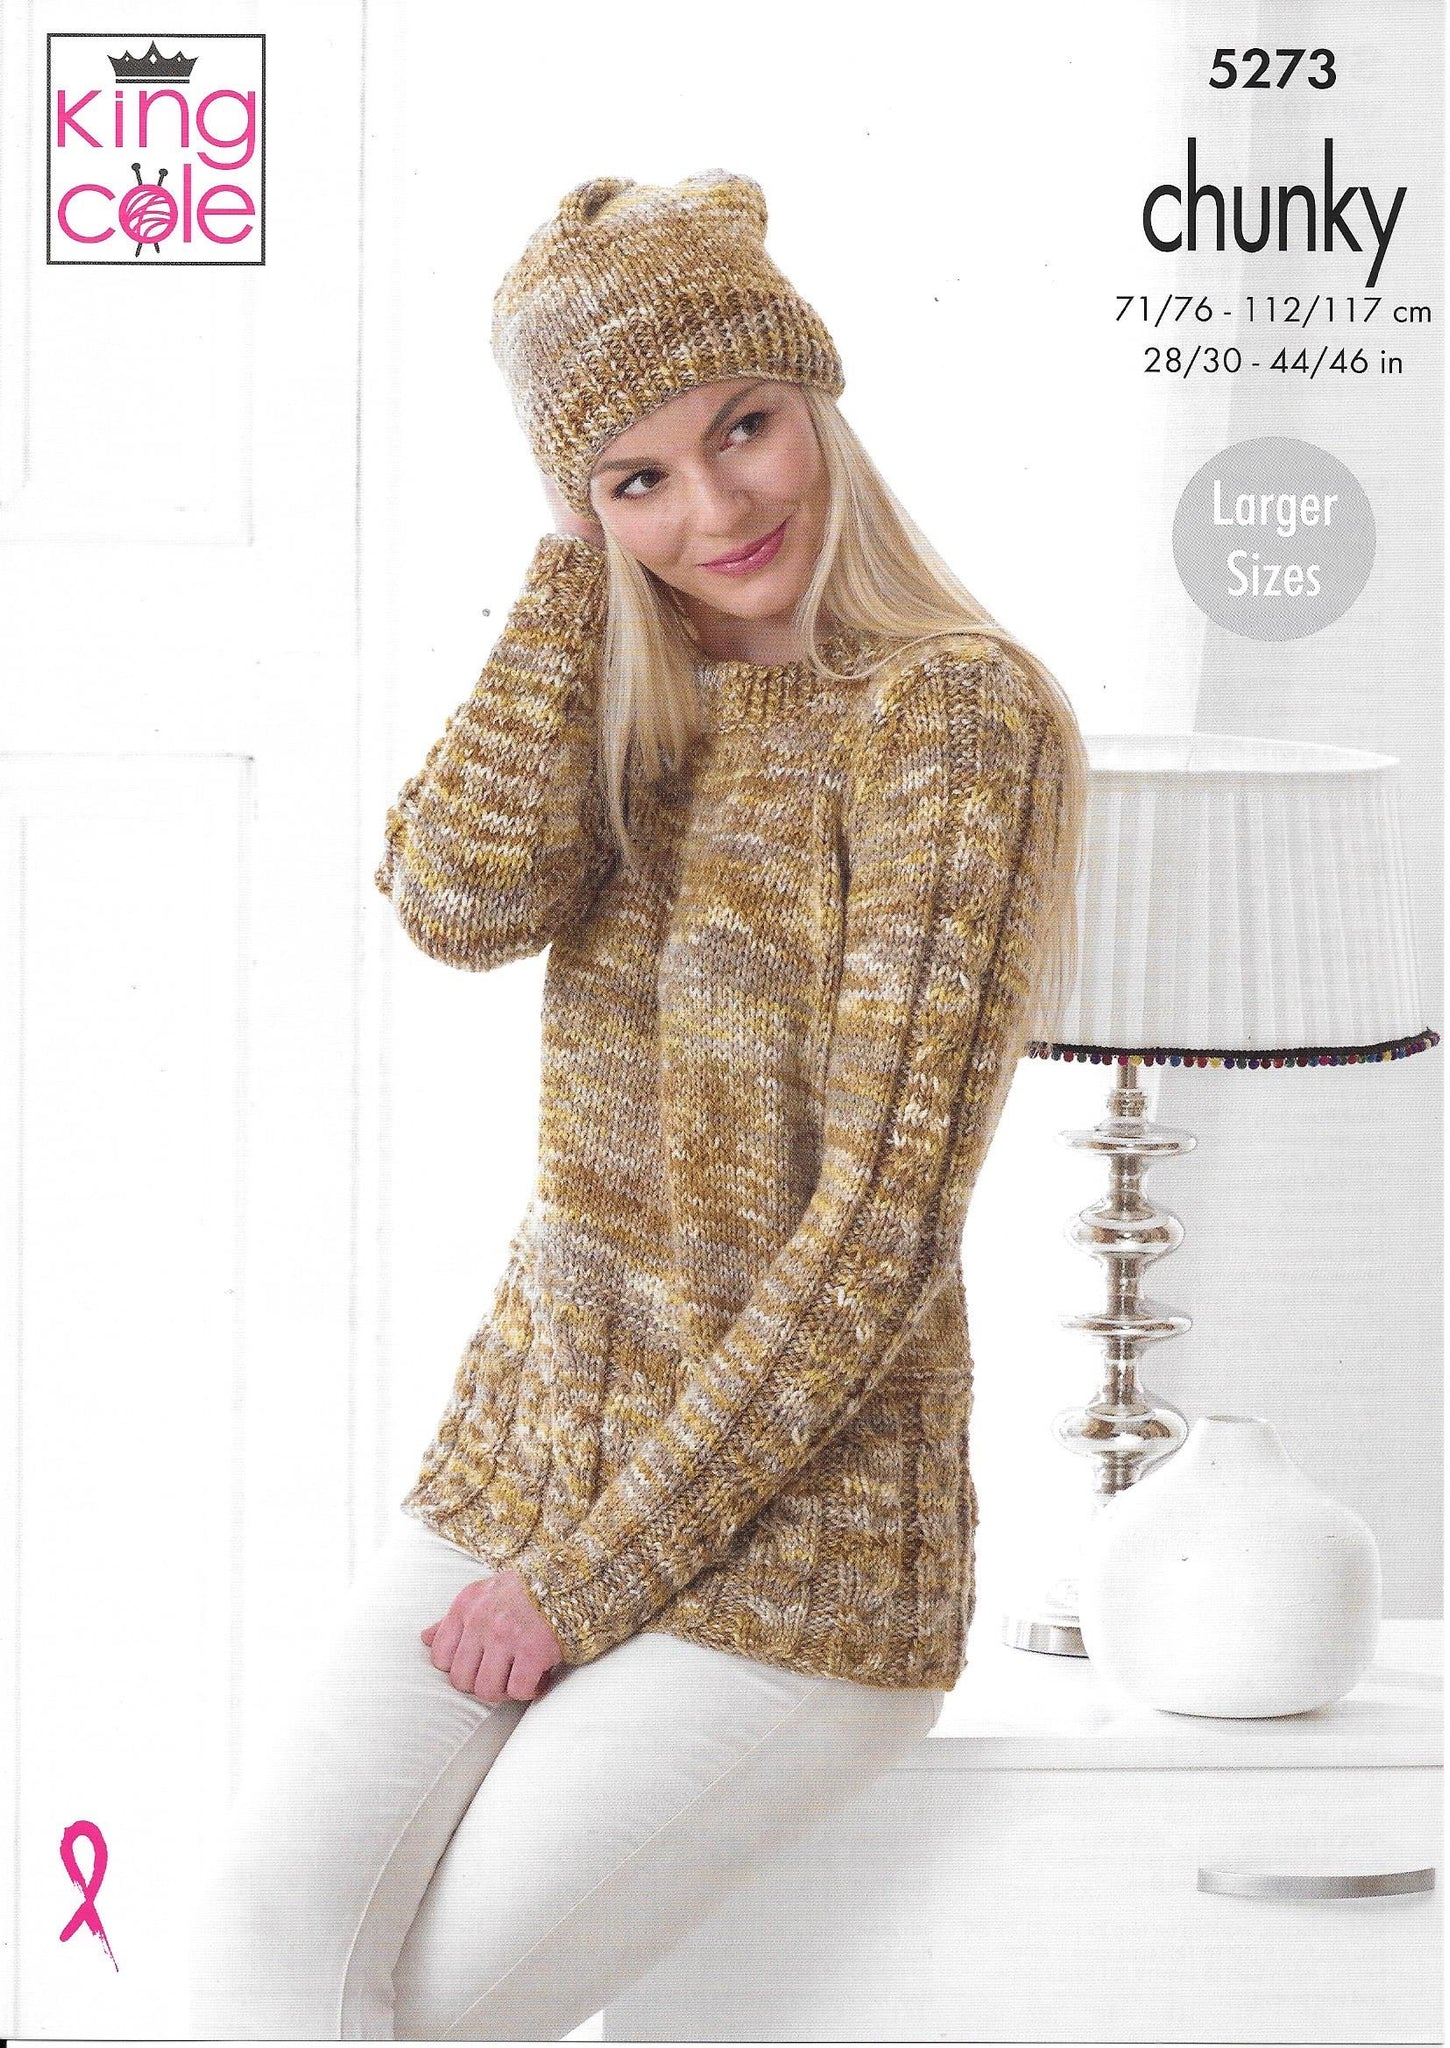 5273 King Cole chunky ladies sweater, cardigan and hat knitting pattern